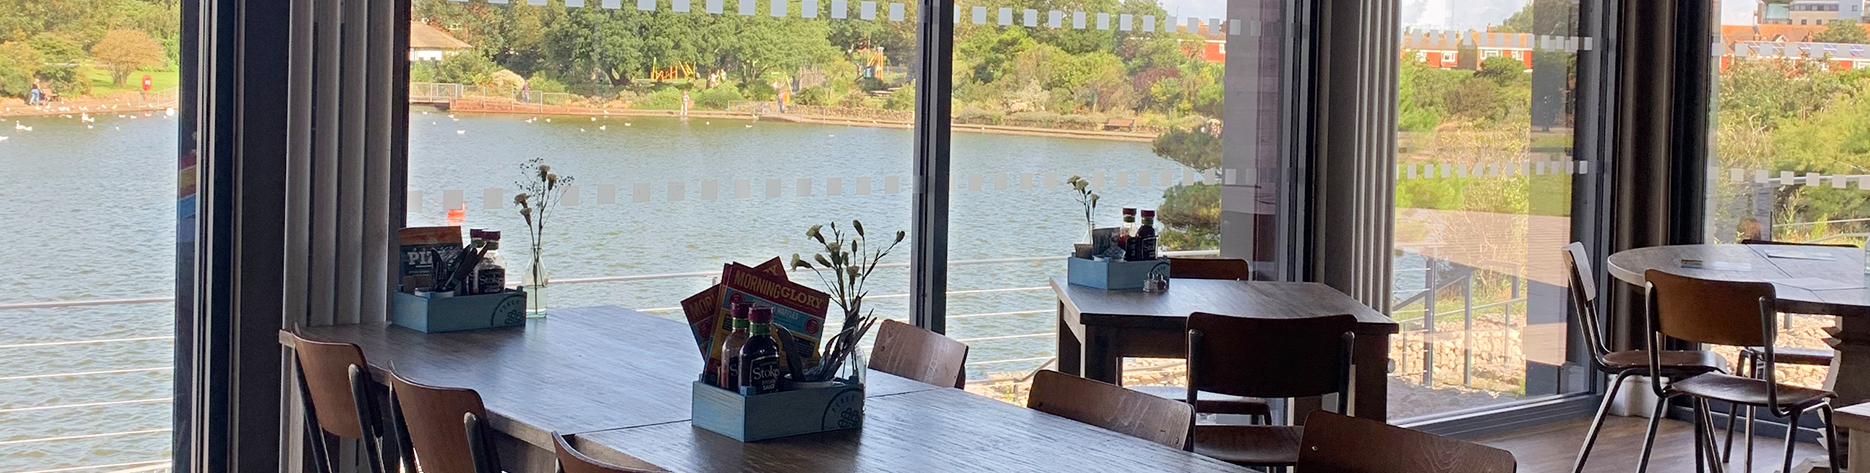 Breakfast tables and Sunny views of Princes Park lake from the Perch in Eastbourne